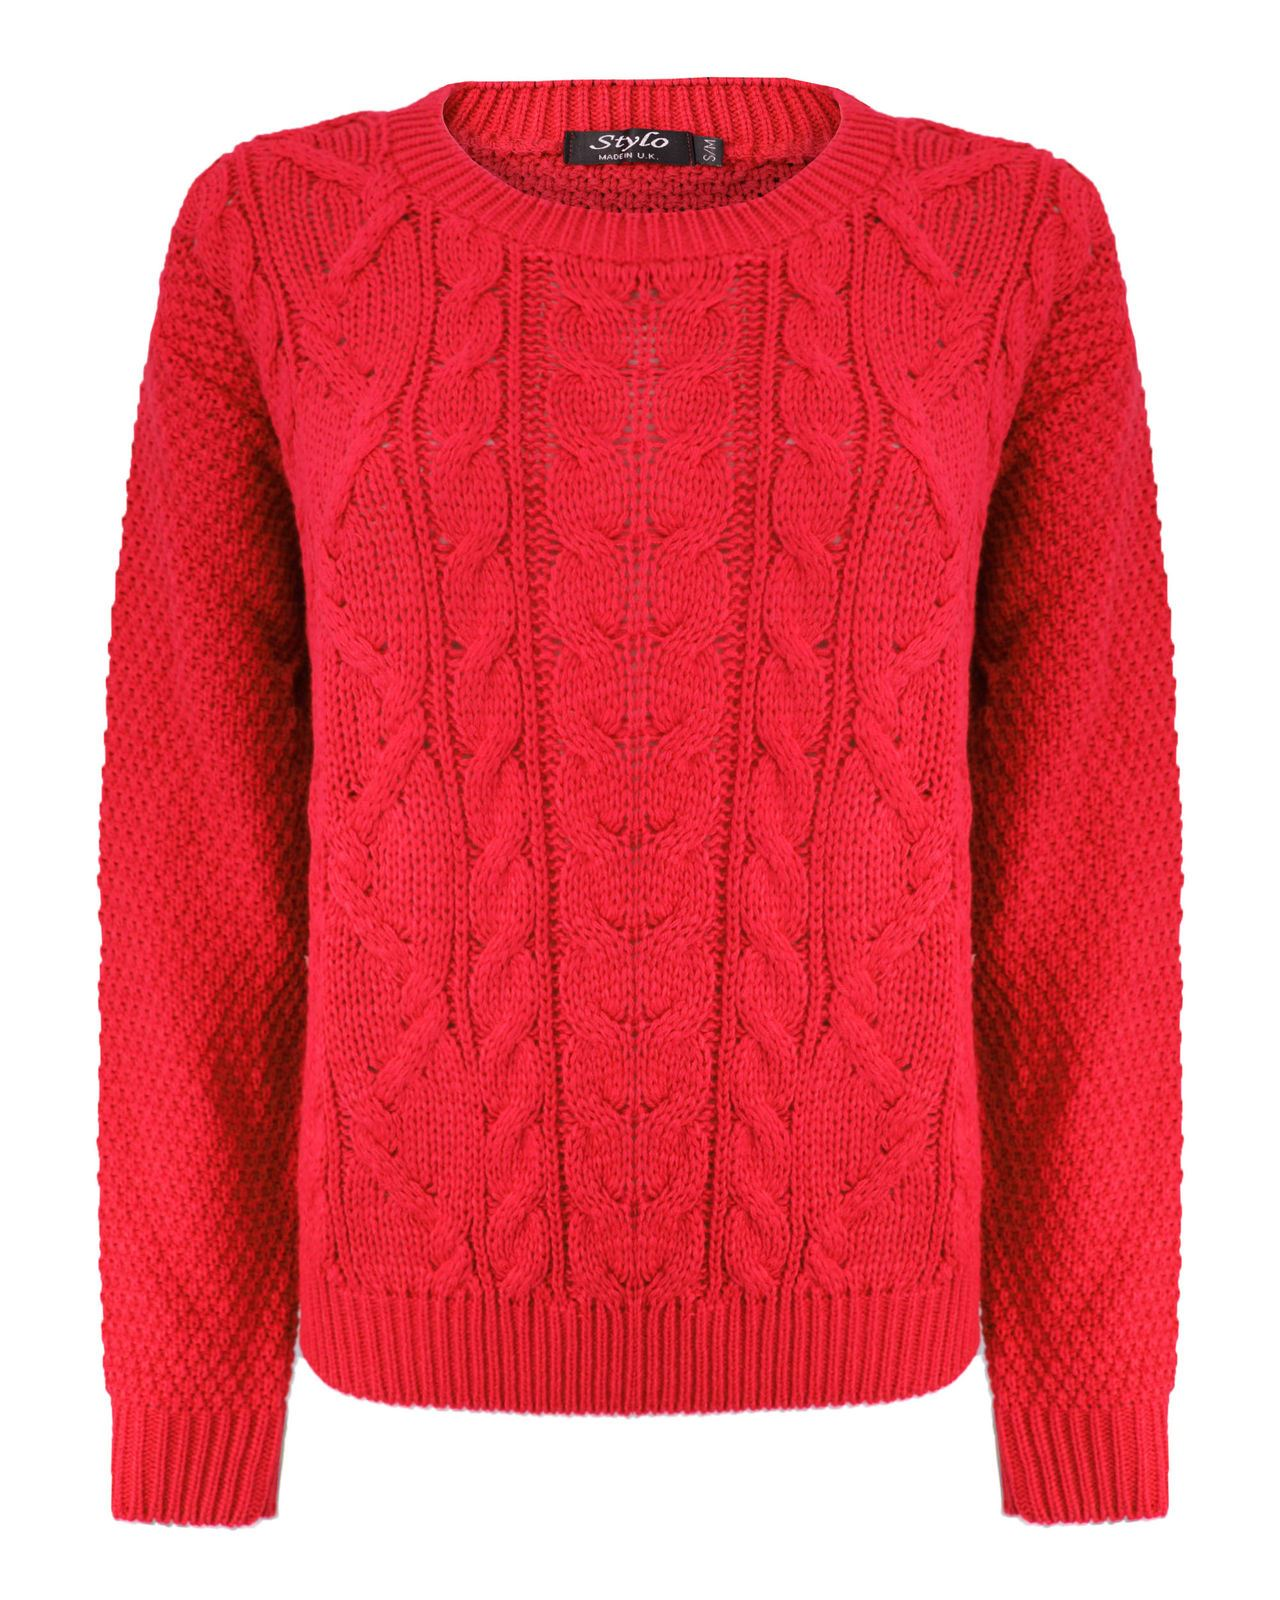 Knitting Patterns For Baggy Sweaters : New Ladies Women Knitted Long Sleeve Cable Jumper Chunky Knit Baggy Sweater T...